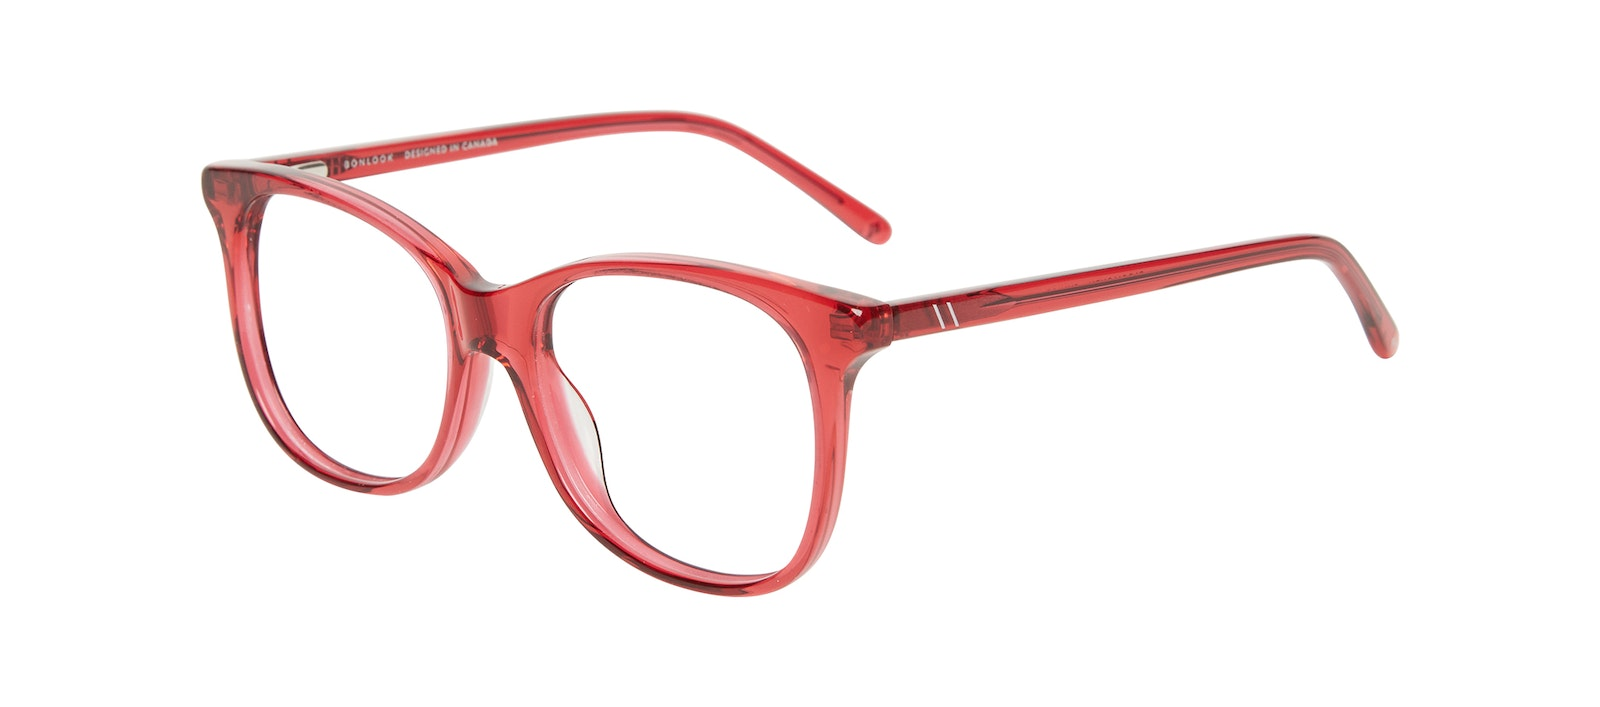 Affordable Fashion Glasses Square Eyeglasses Kids Bloom Junior Ruby Tilt